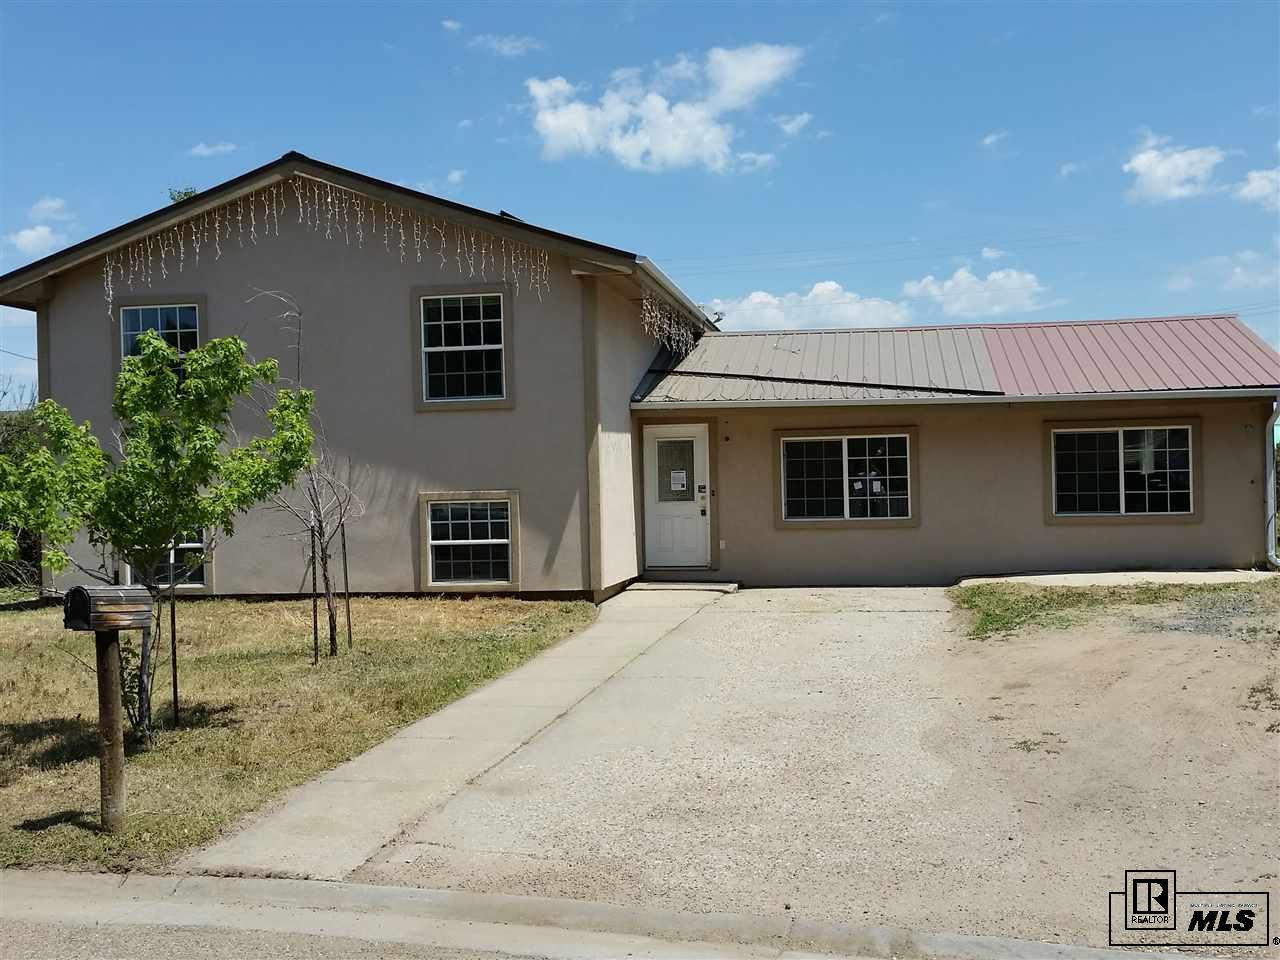 425 Apple St, Craig, CO 81625